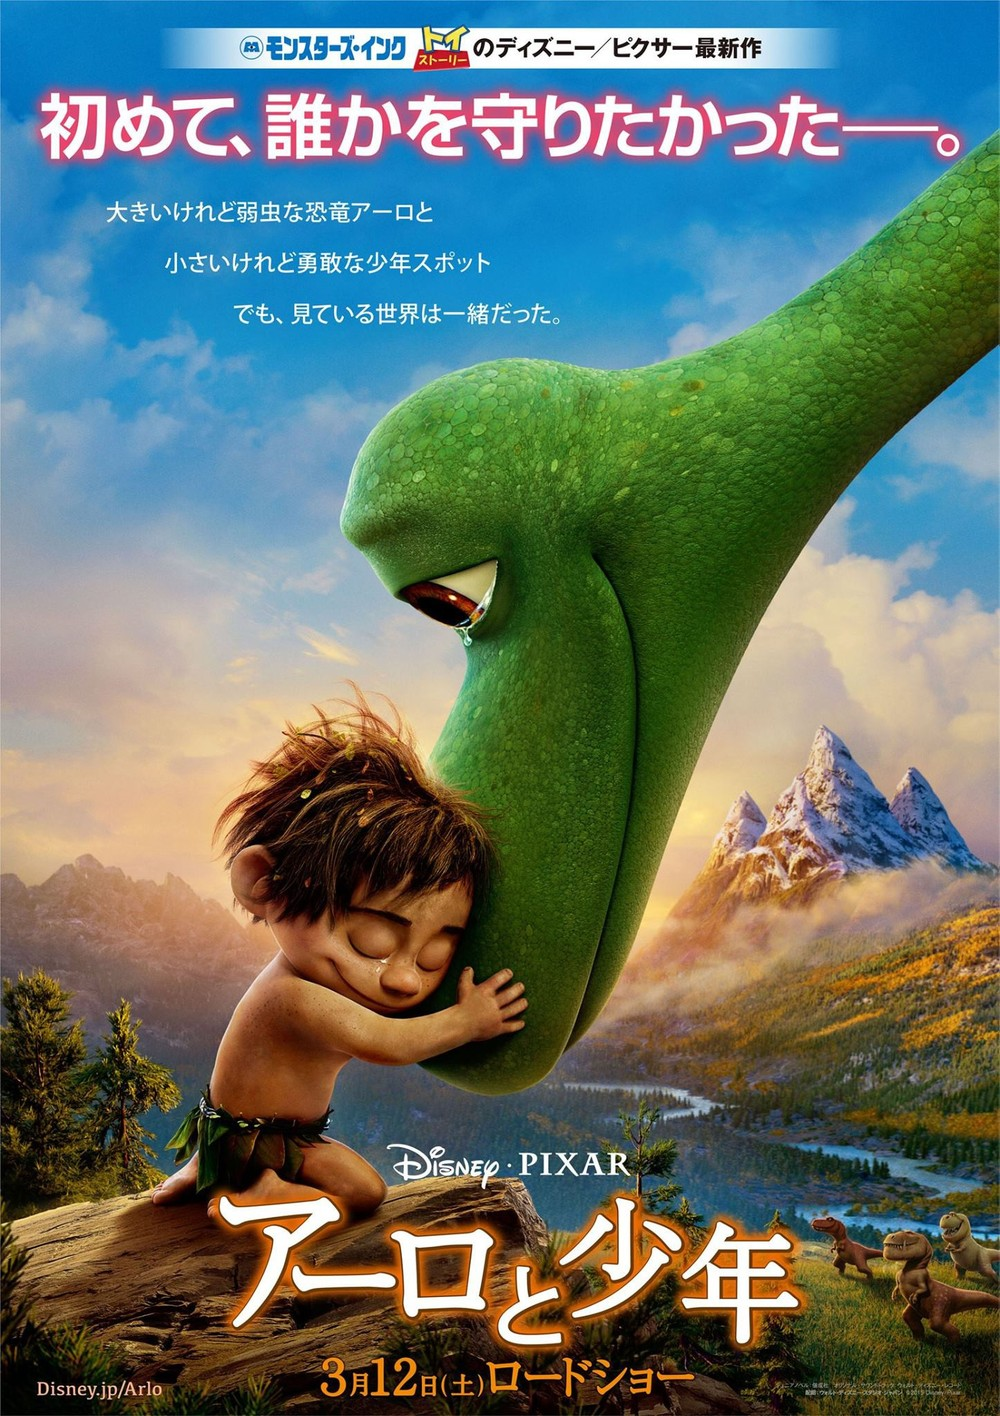 The good dinosaur release date in Perth